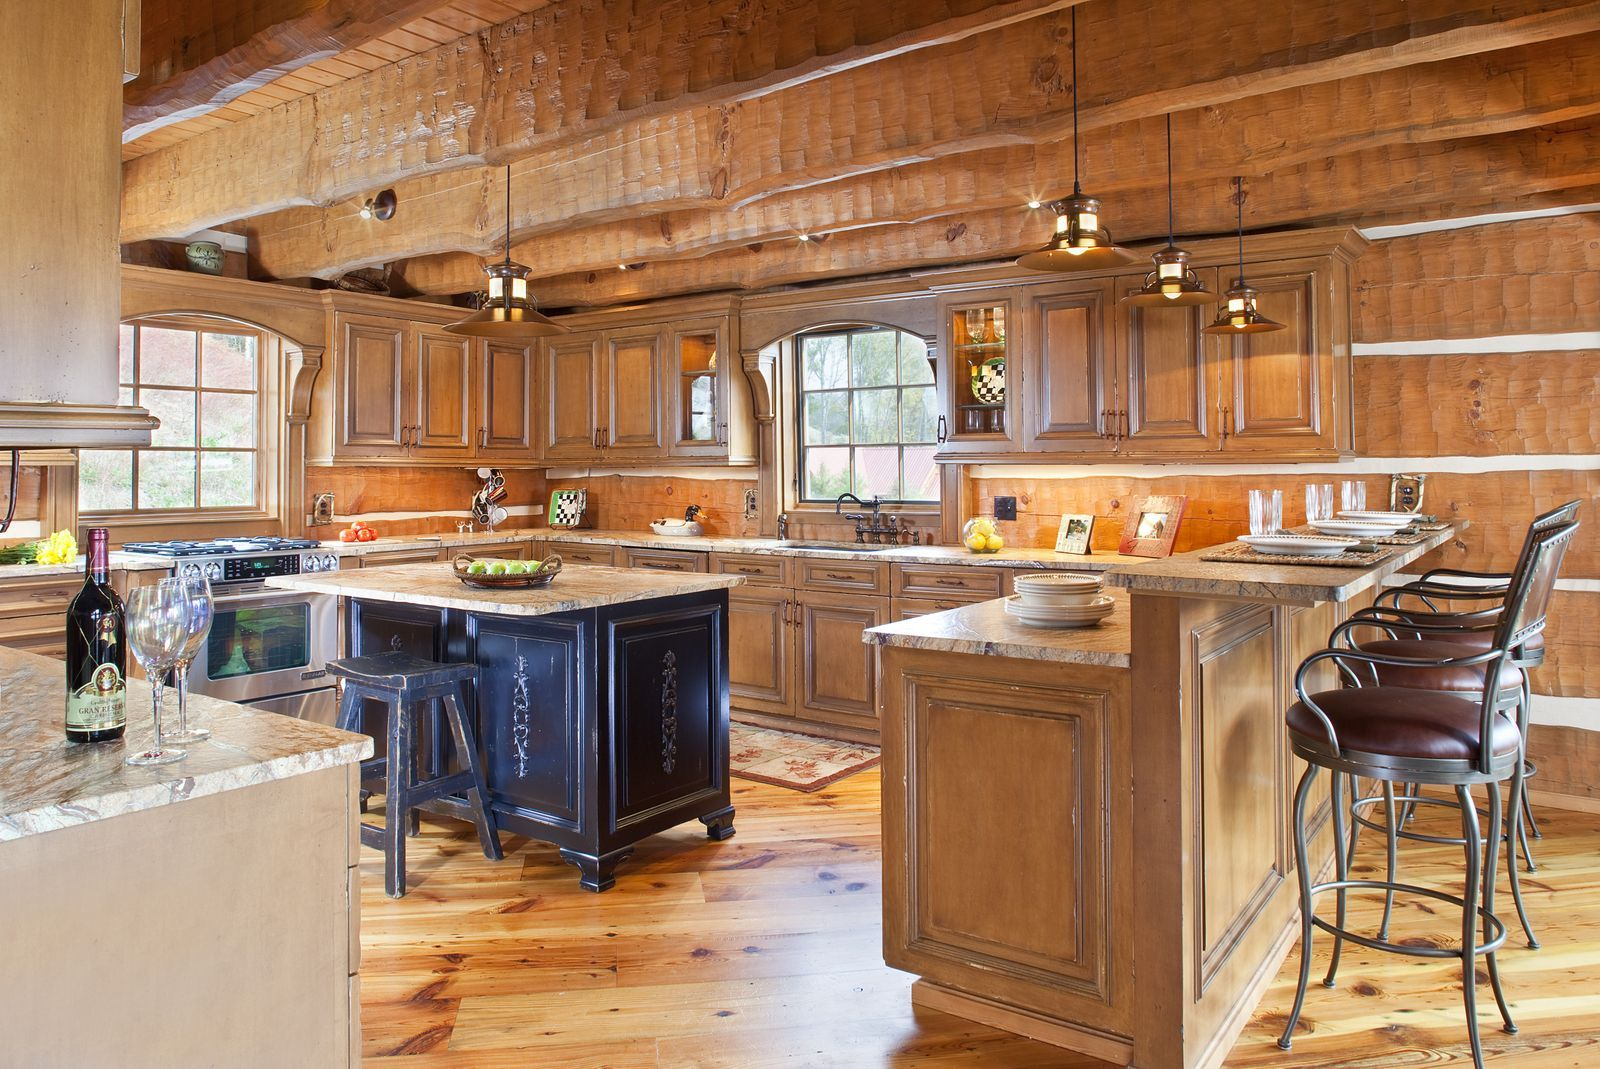 Log Home Design Featured Small Kitchen Island With Stools Plus Unique  Backsplash Idea Prepare Your Best Escapism In The Countryside With Log Home  Ideas ...